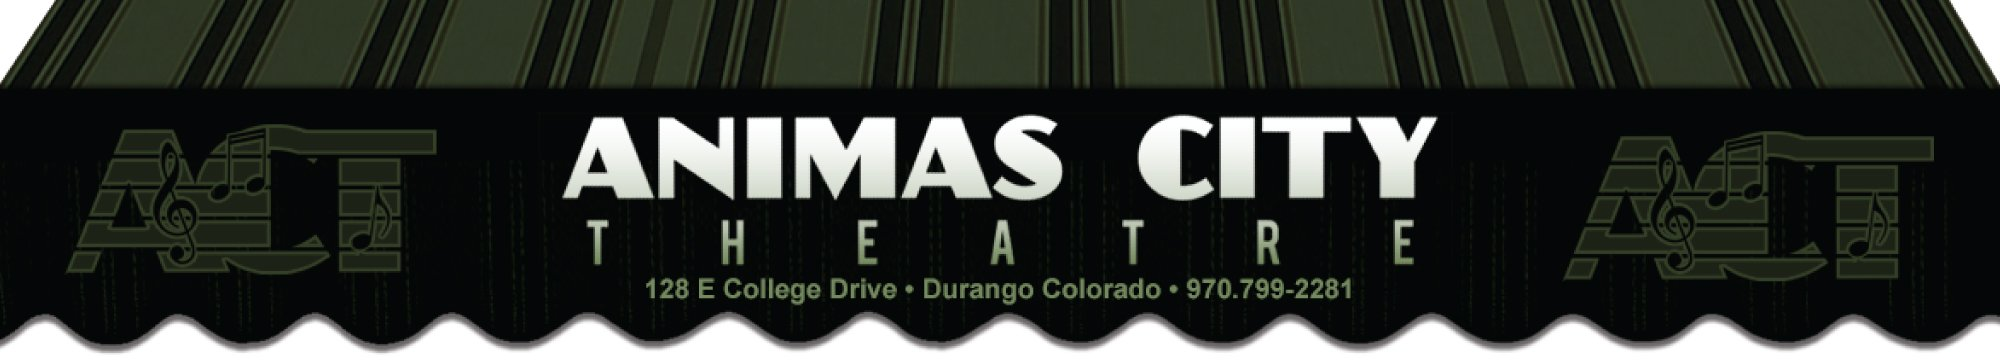 Animas City Theater banner